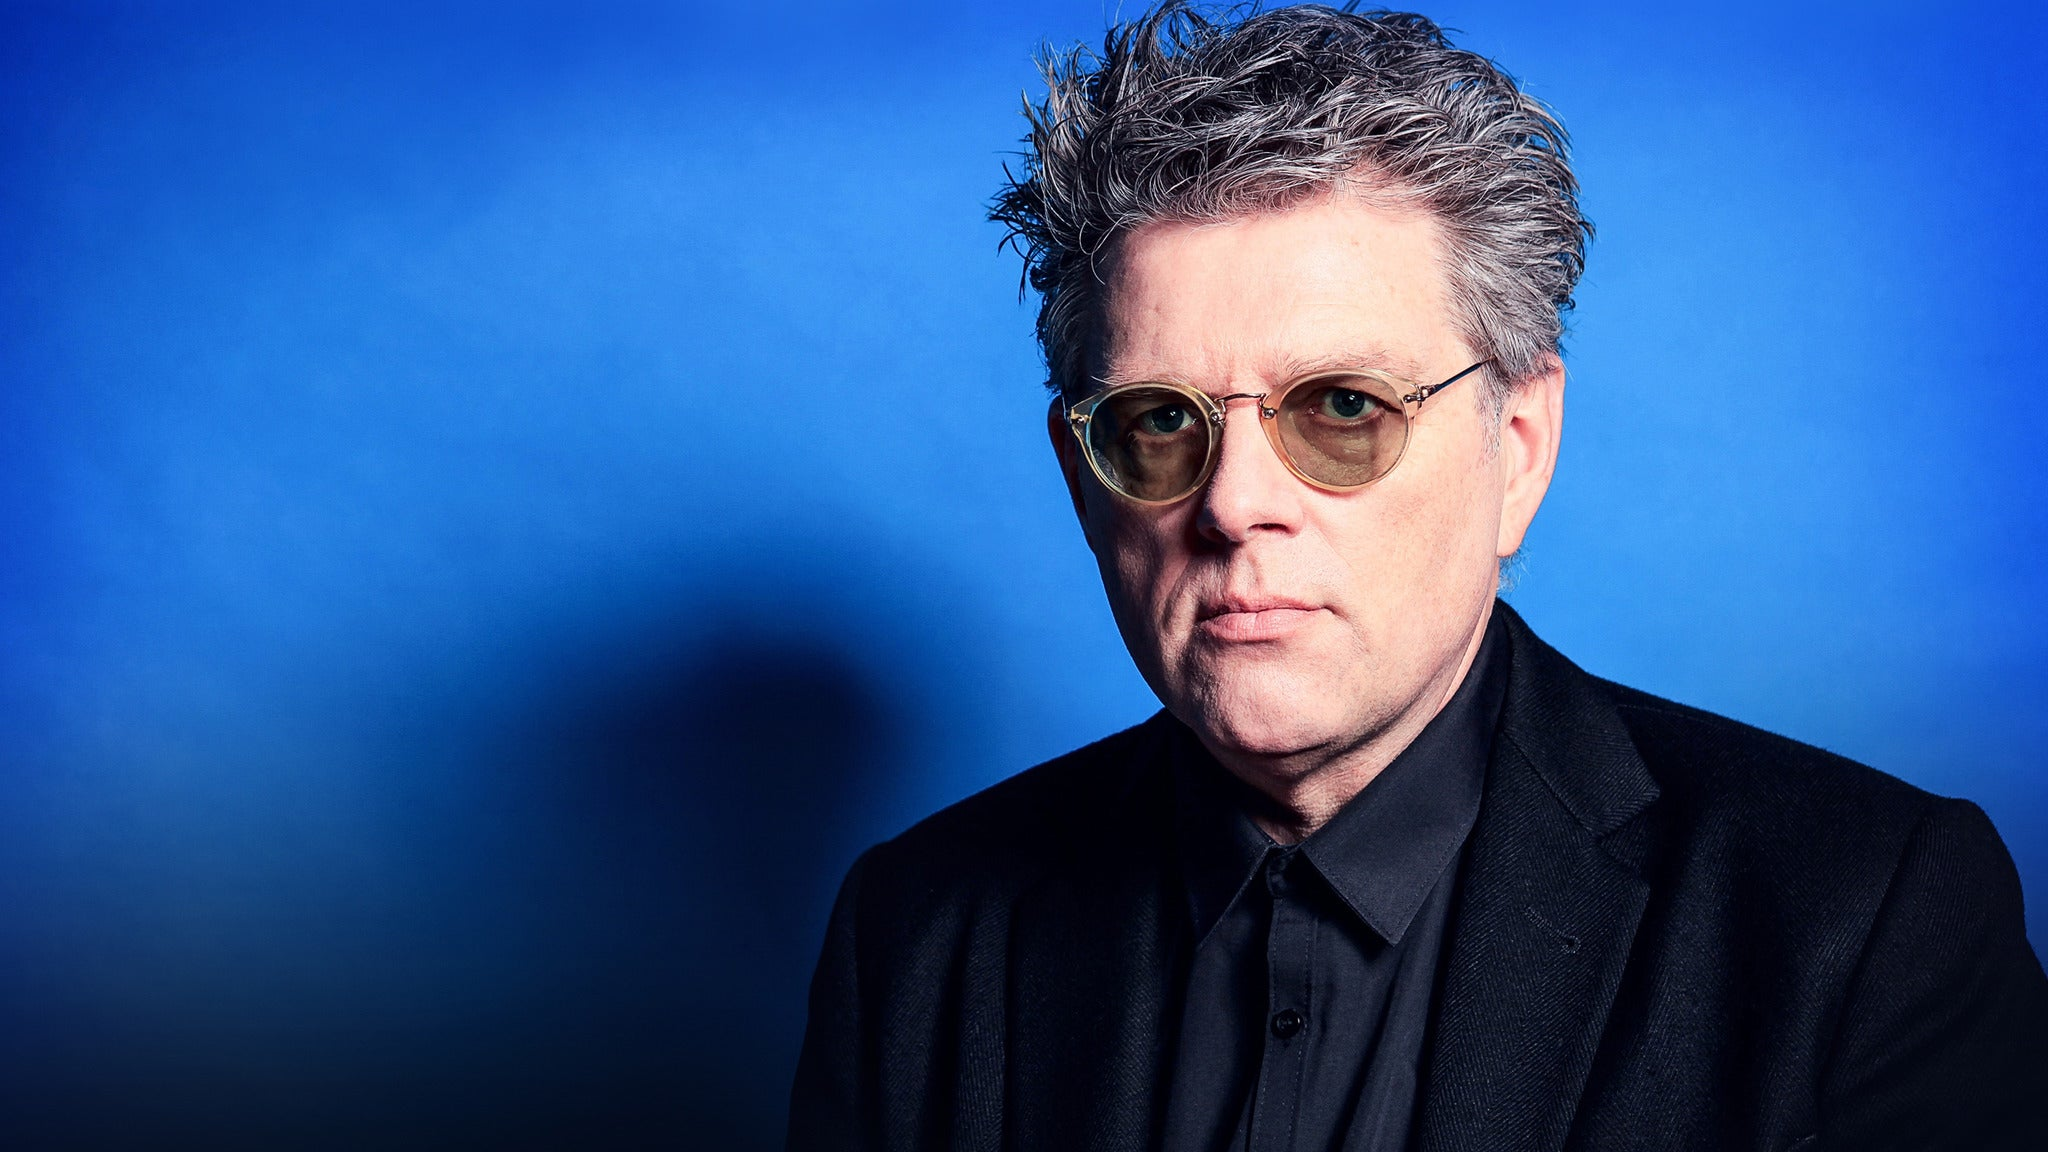 Thompson Twins' Tom Bailey at Music Box at the Borgata